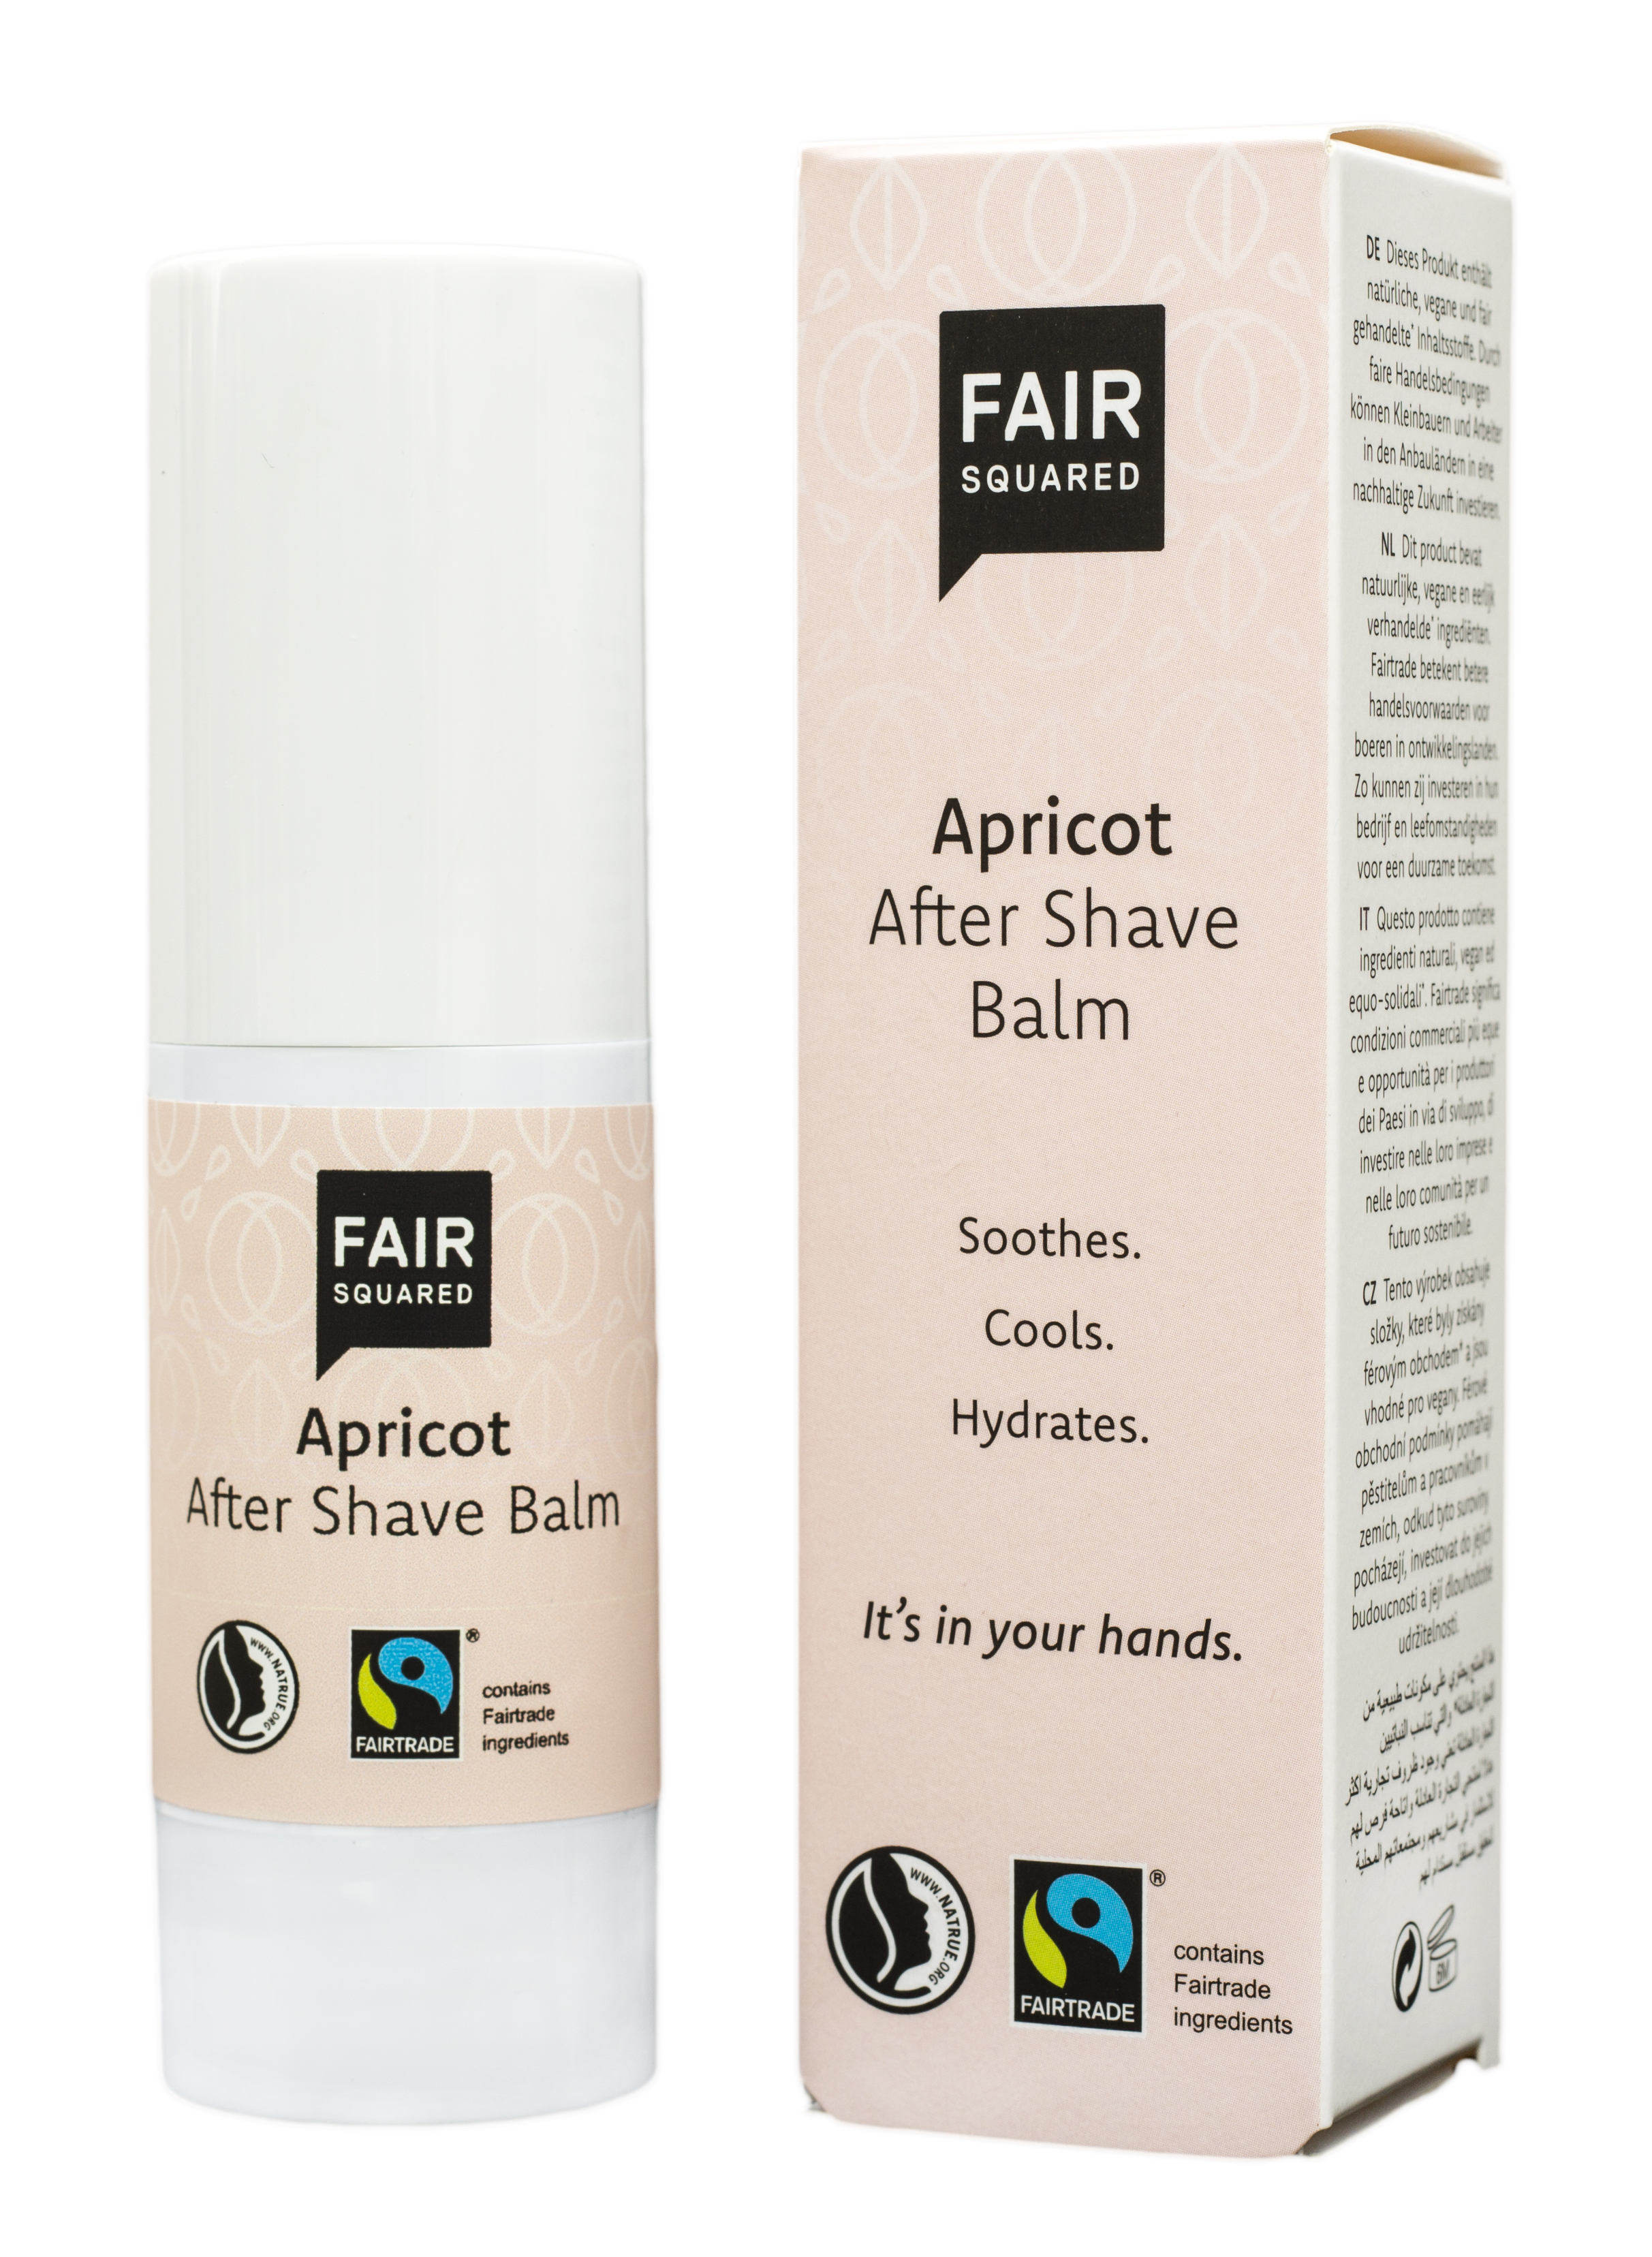 FAIR SQUARED After Shave Balm Apricot